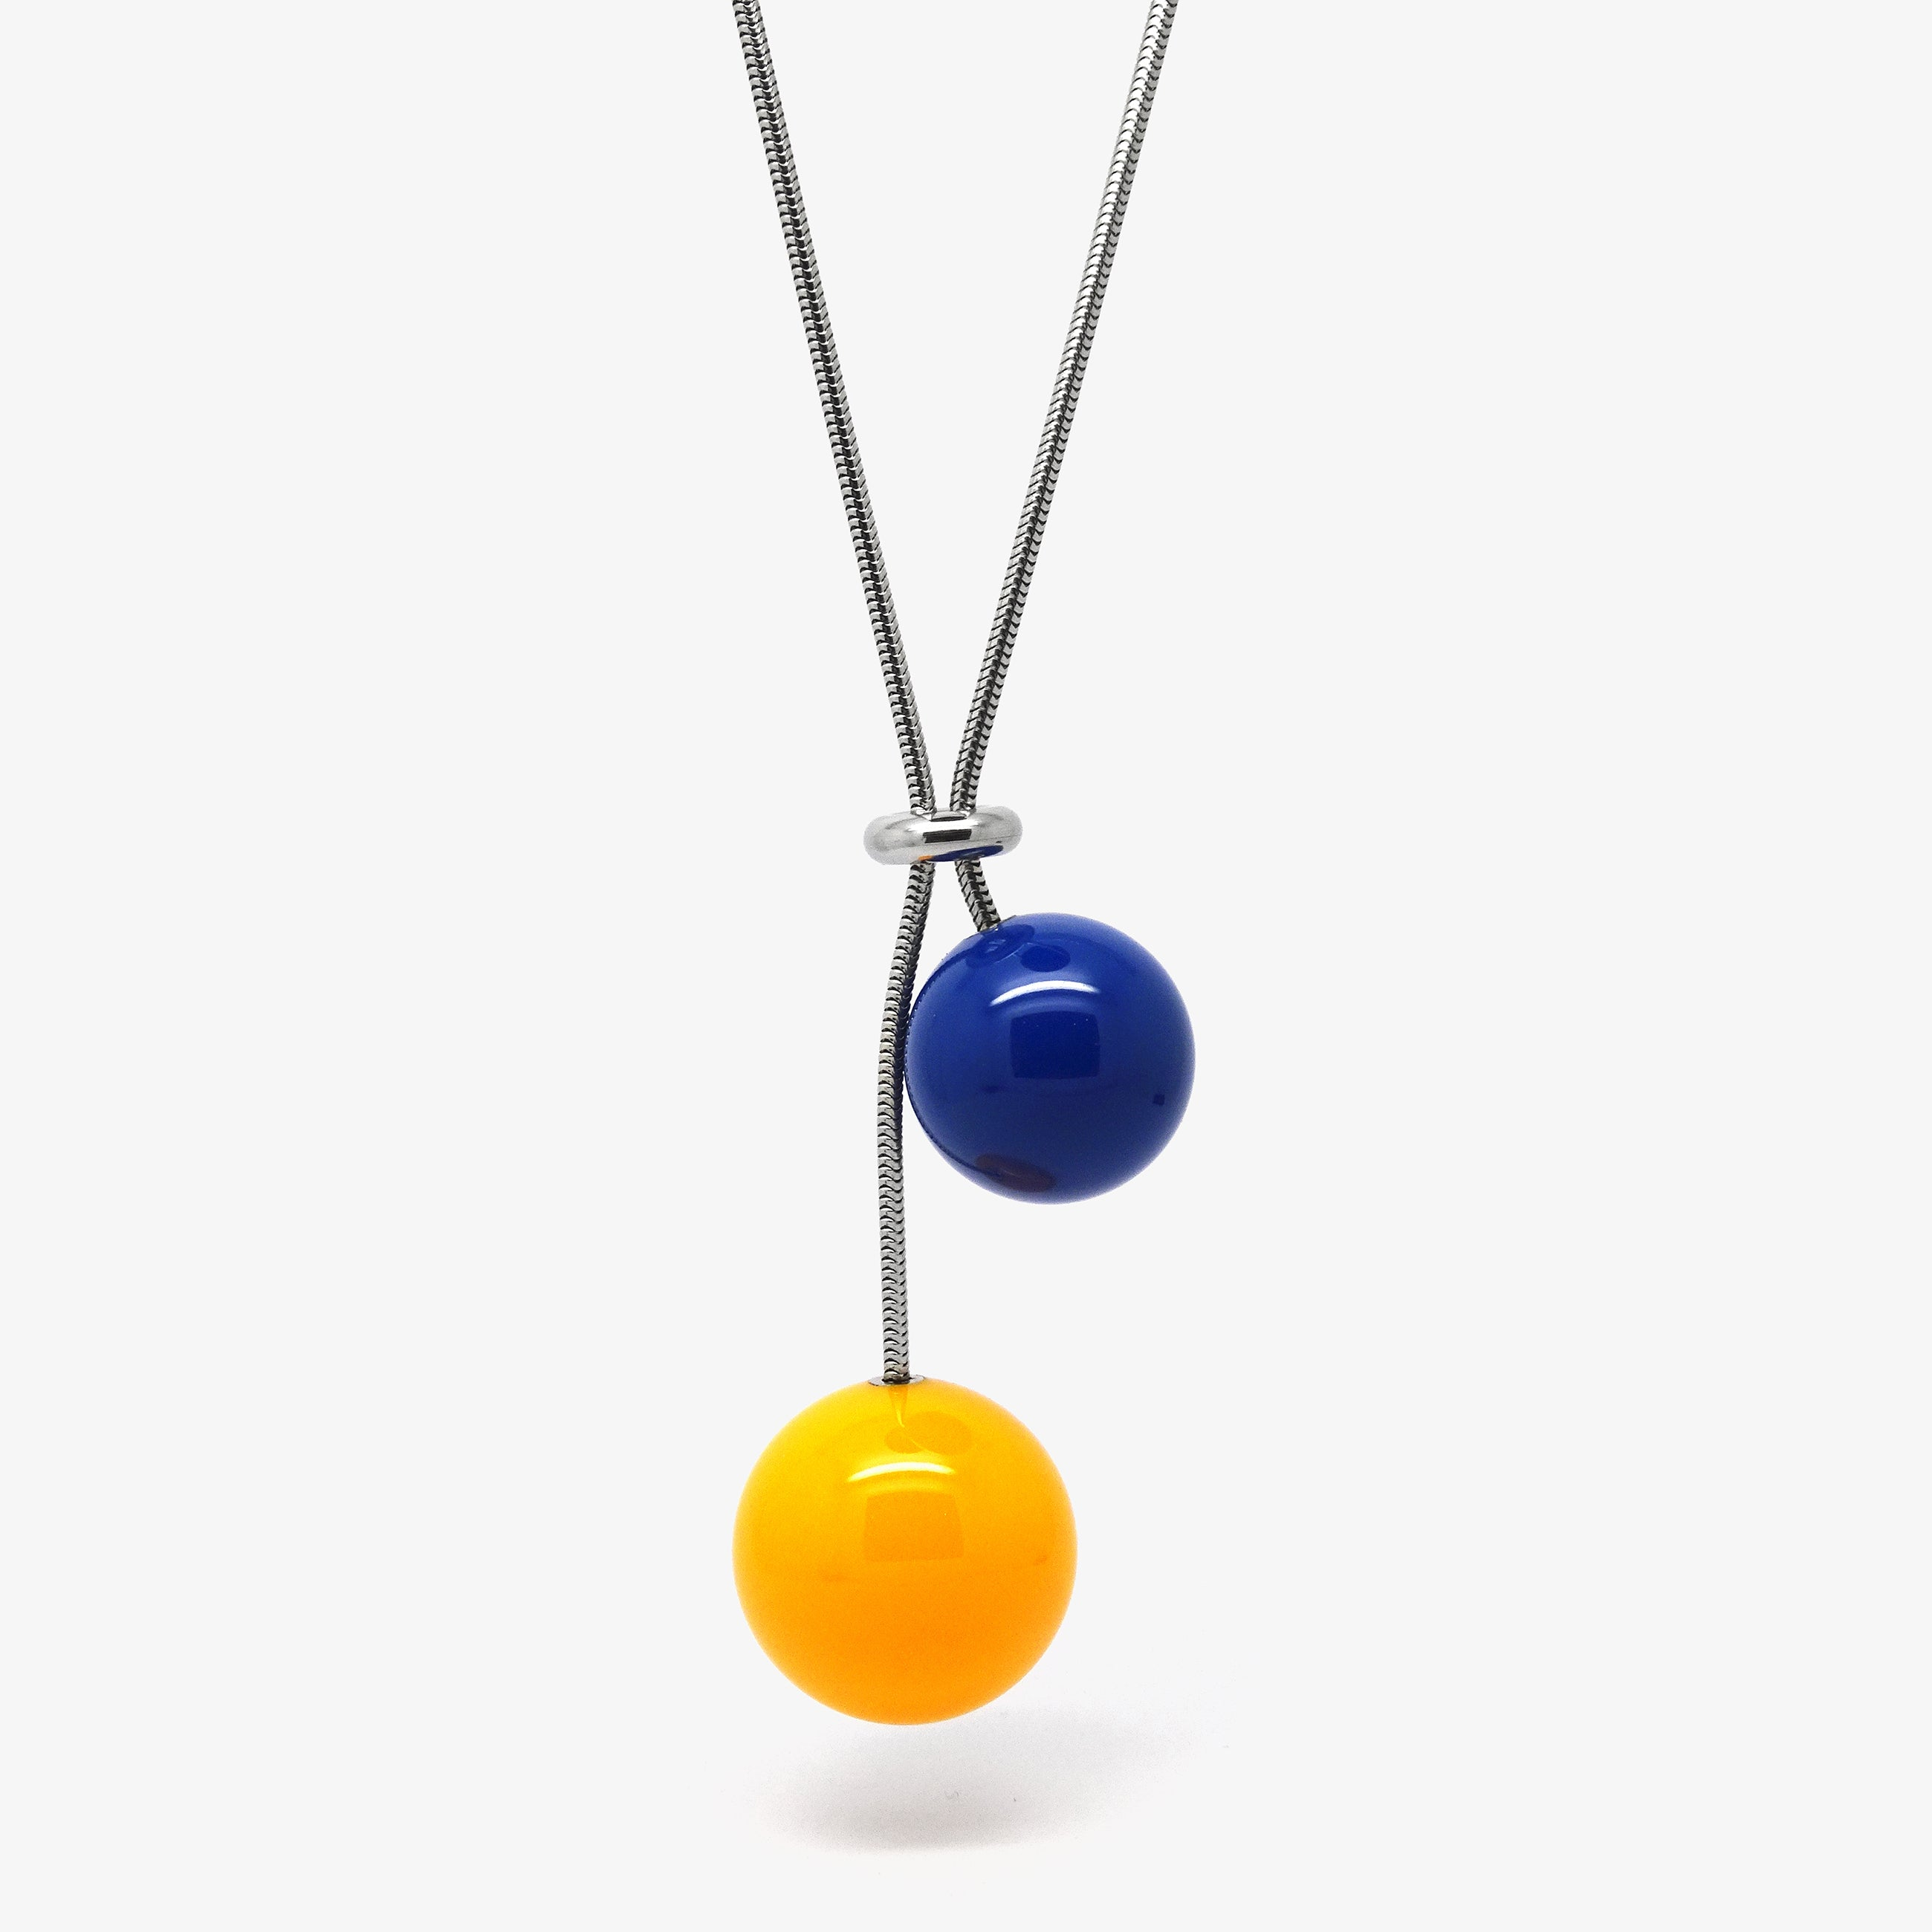 DOUBLE BALL NECKLACE - YELLOW & BLUE